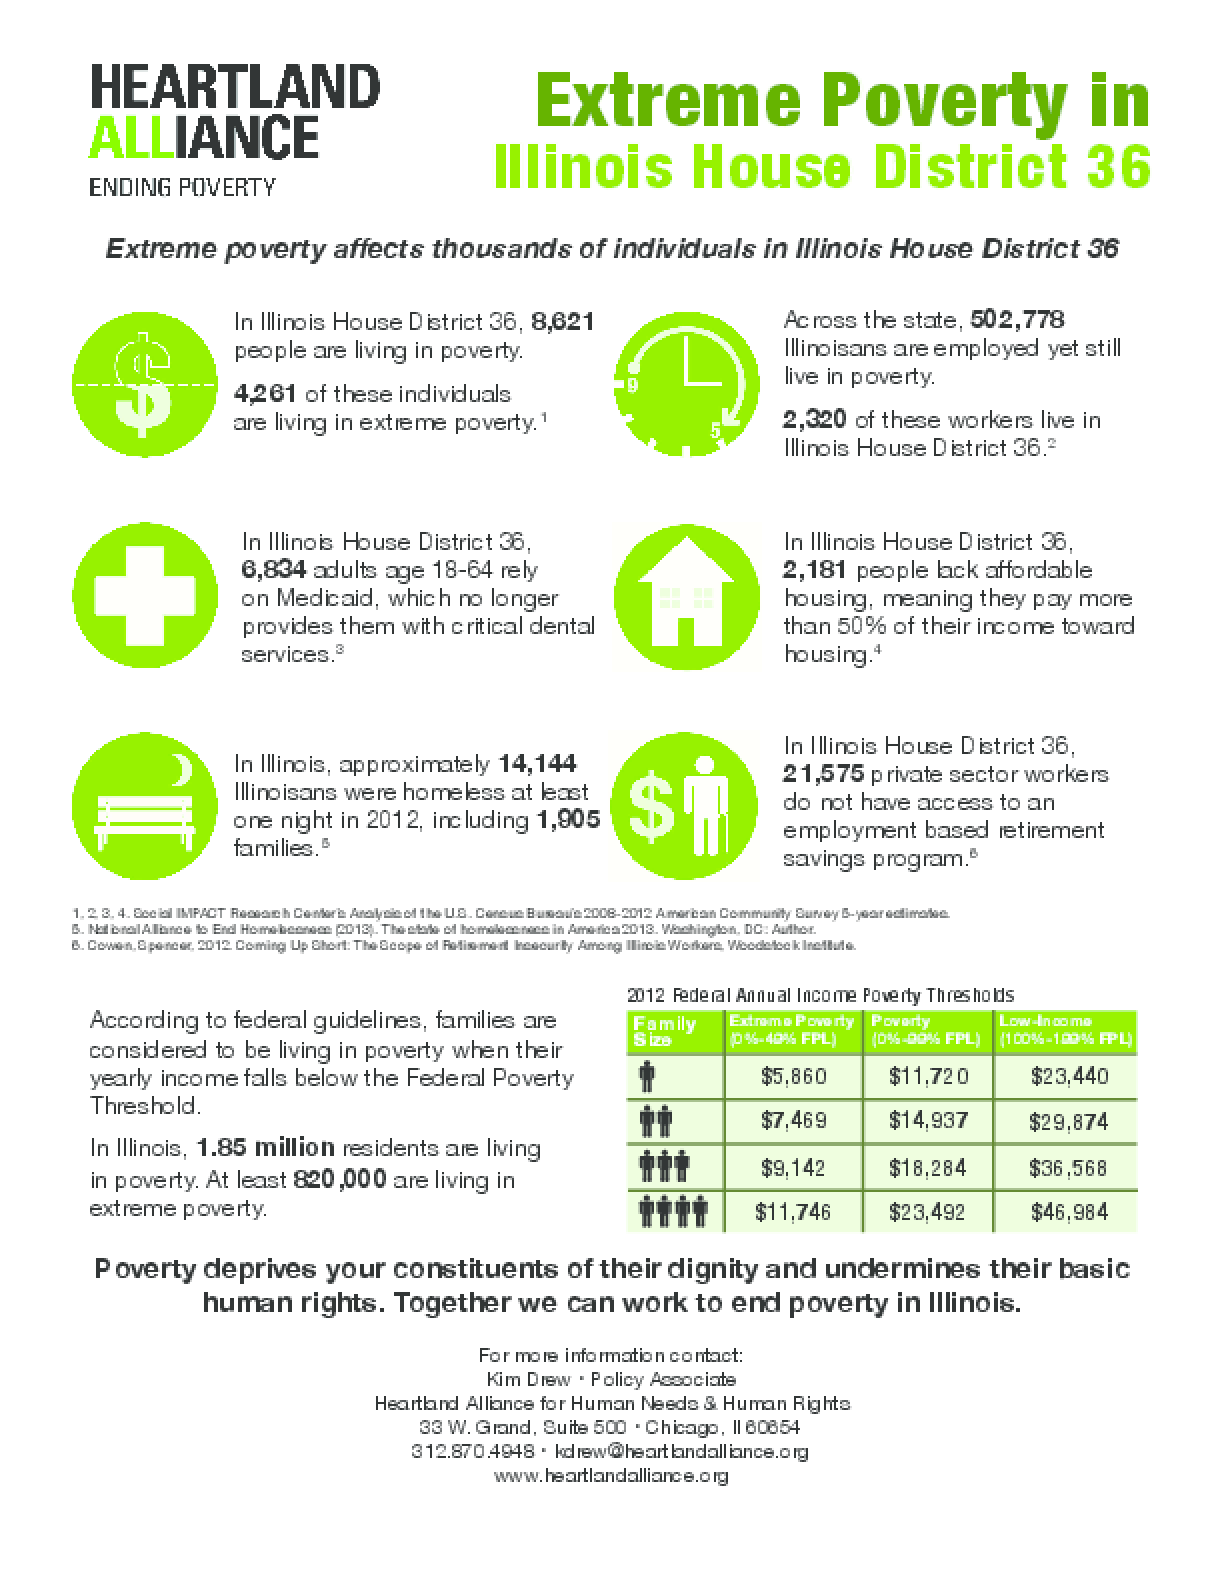 Poverty Fact Sheets for Illinois House District 36